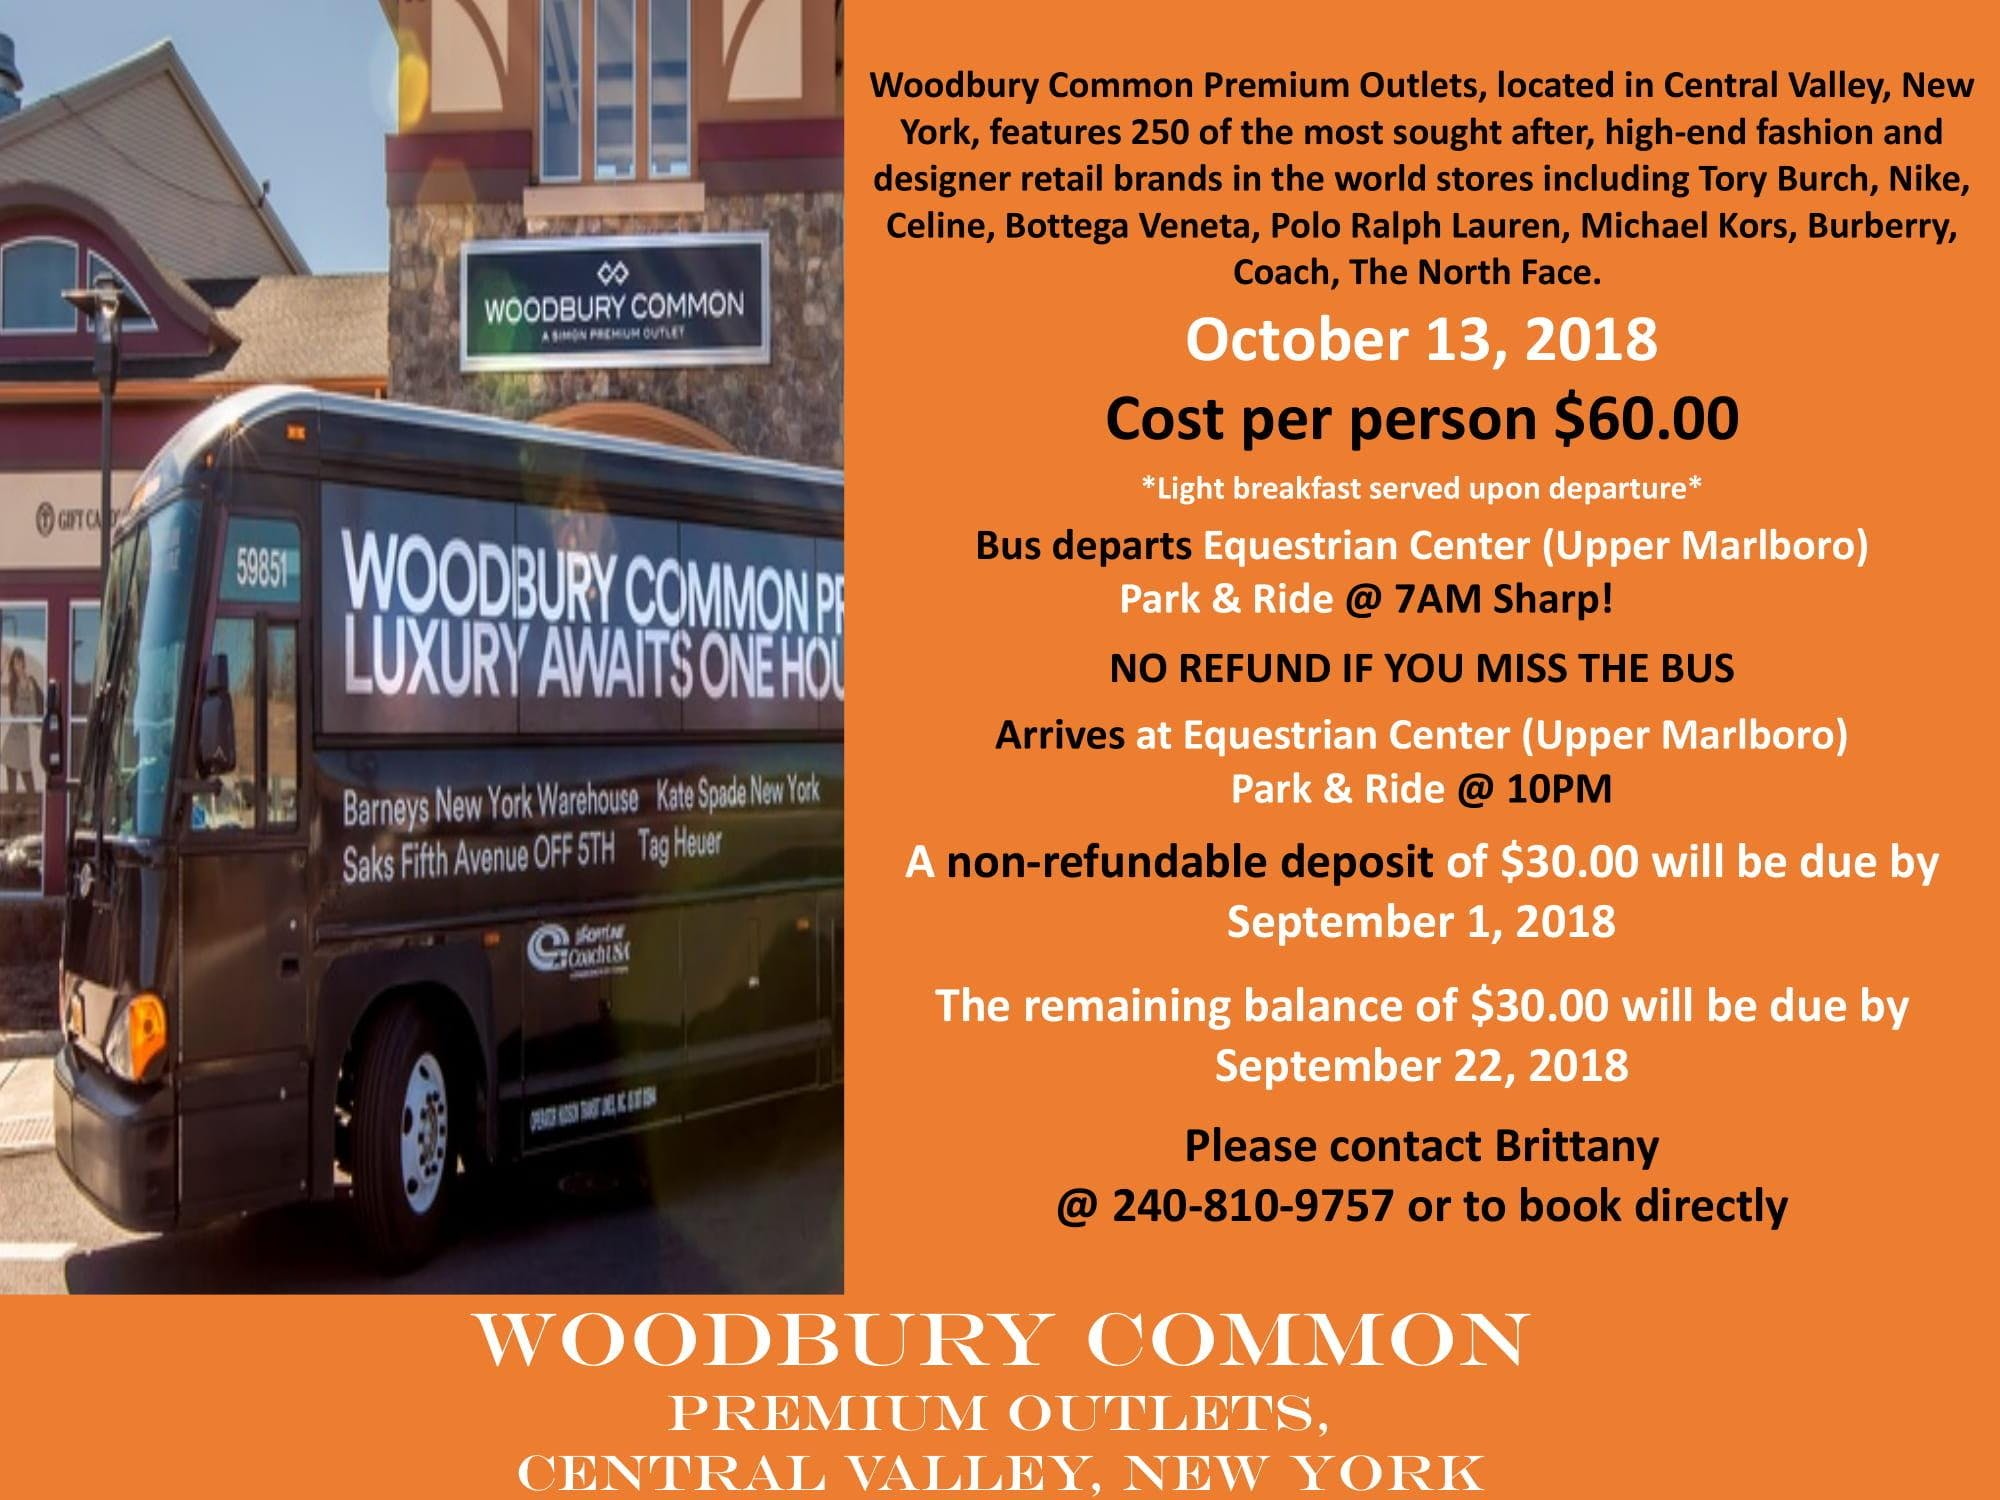 Woodbury Common Premium Outlets Shopping Trip - 13 OCT 2018